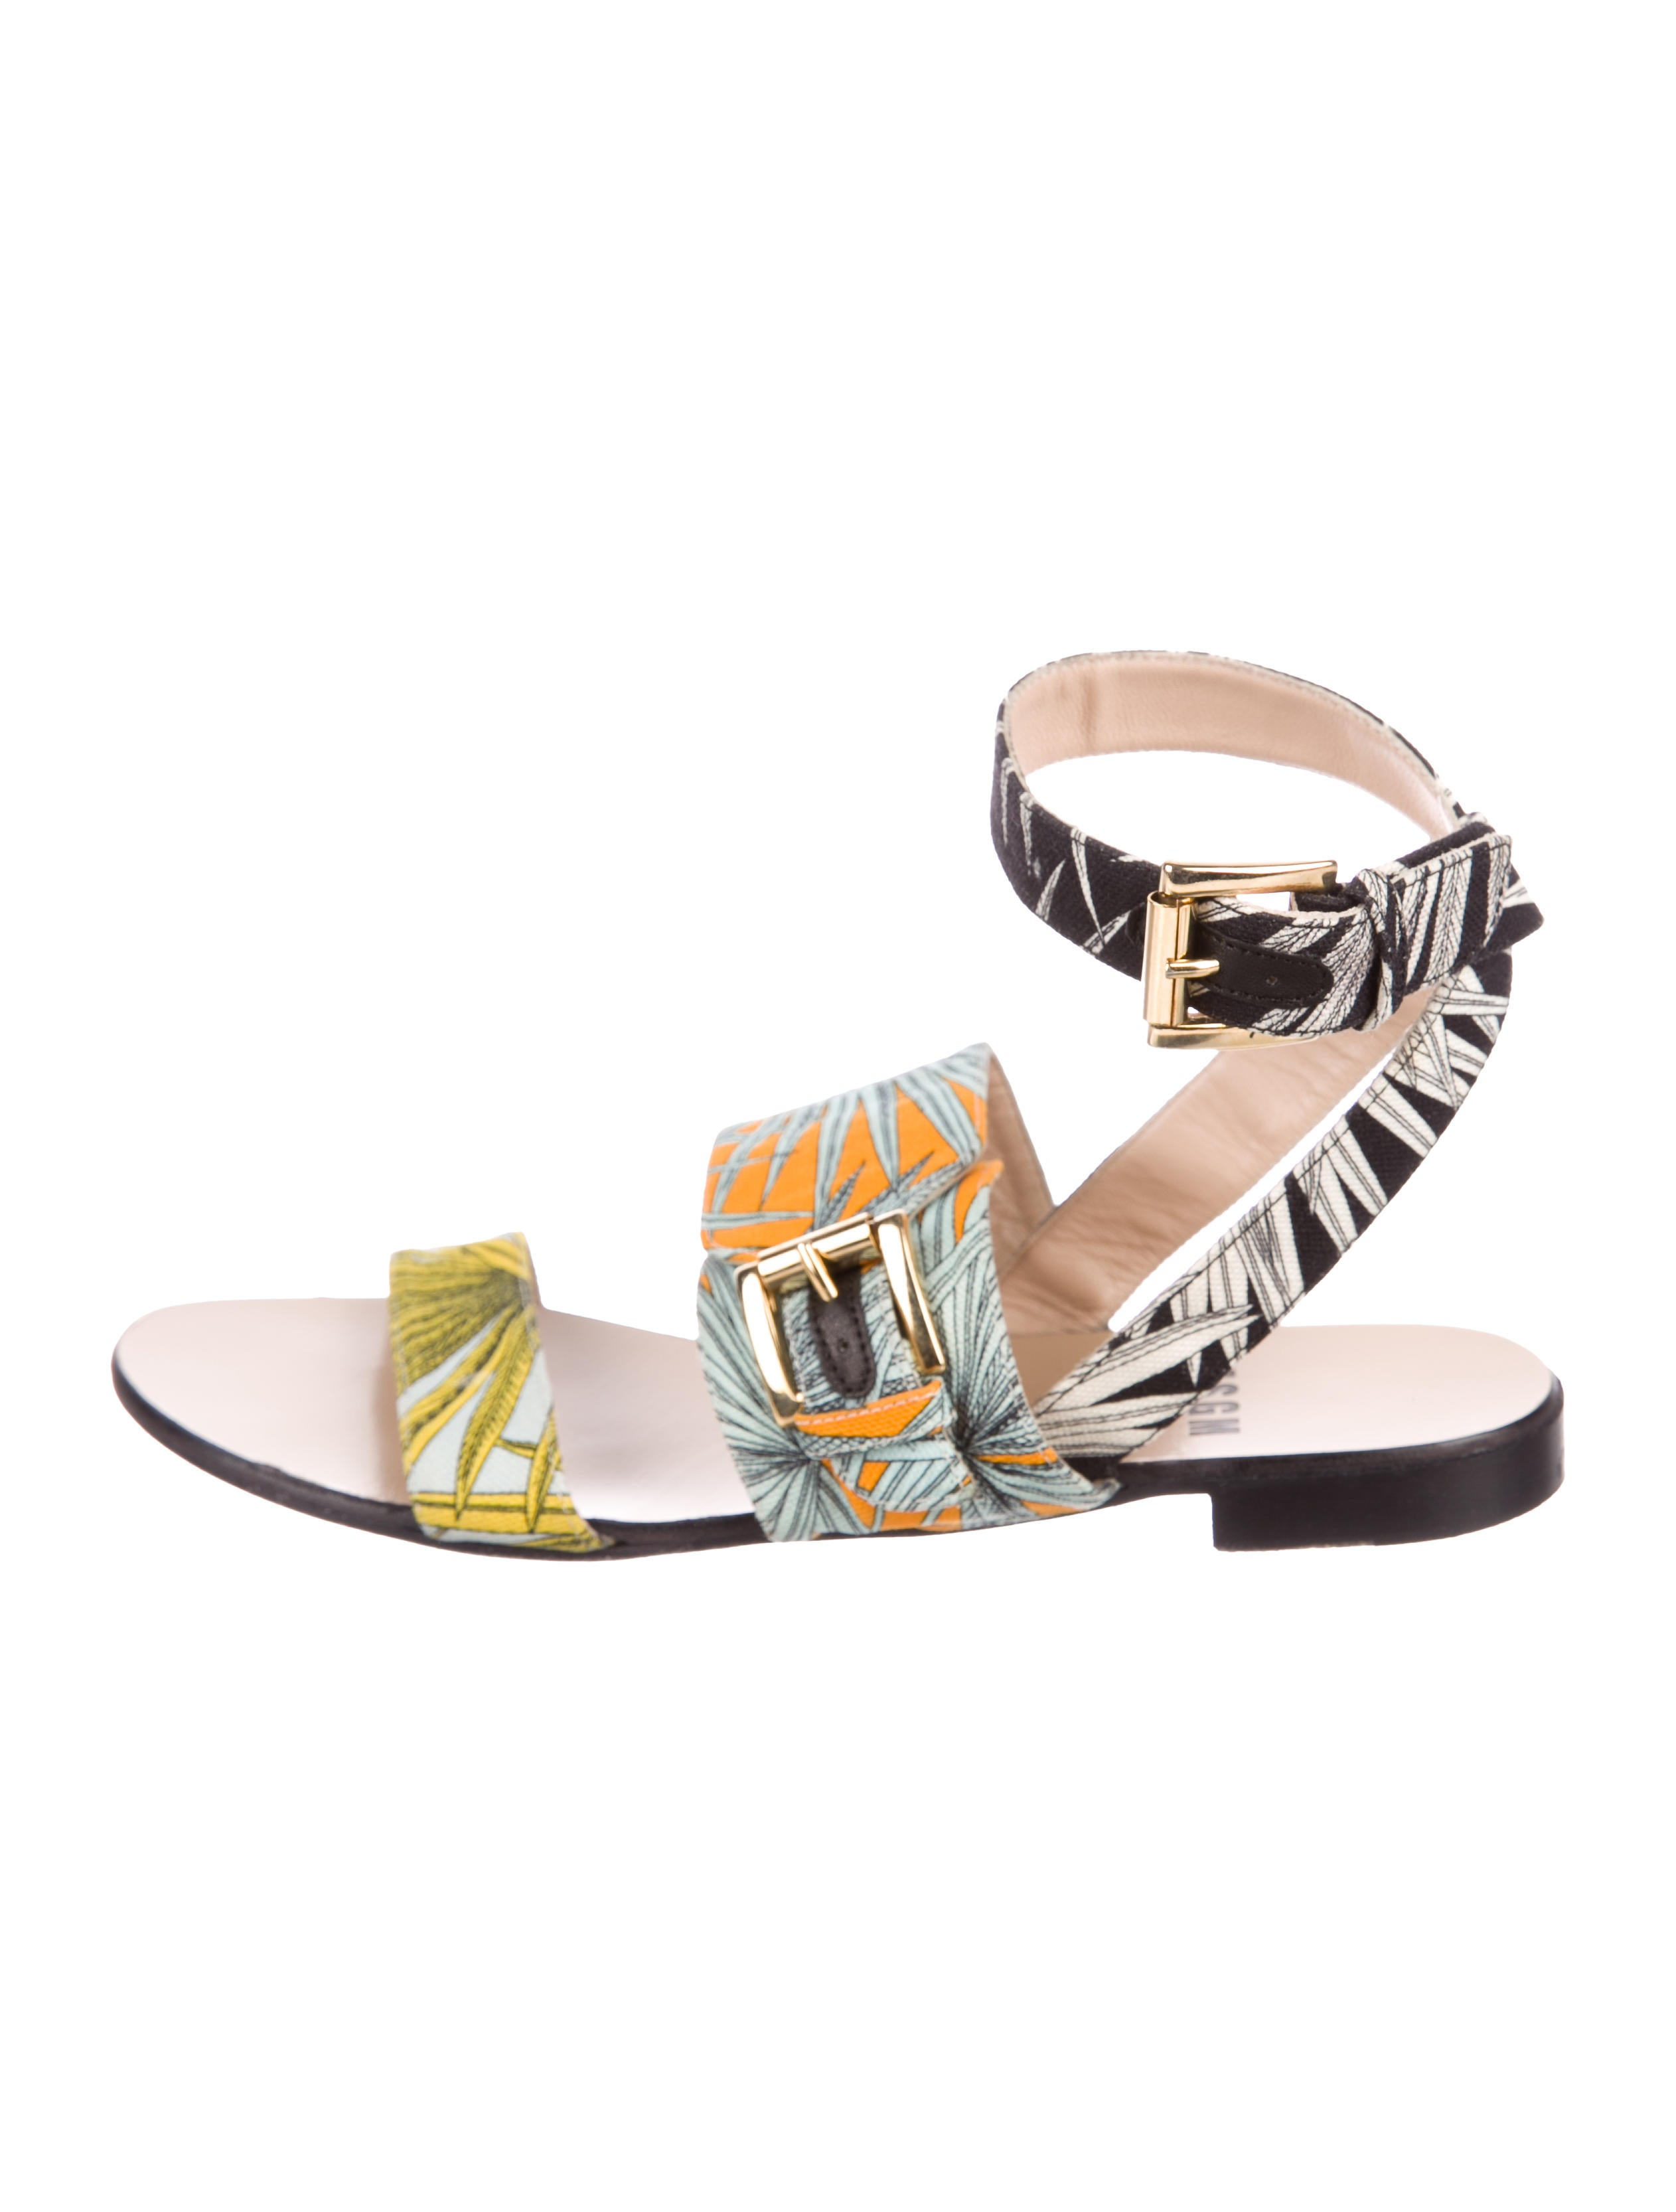 MSGM Canvas Multistrap Sandals cheap pick a best low price fee shipping cheap price high quality online shopping online high quality Texdo2oqJ